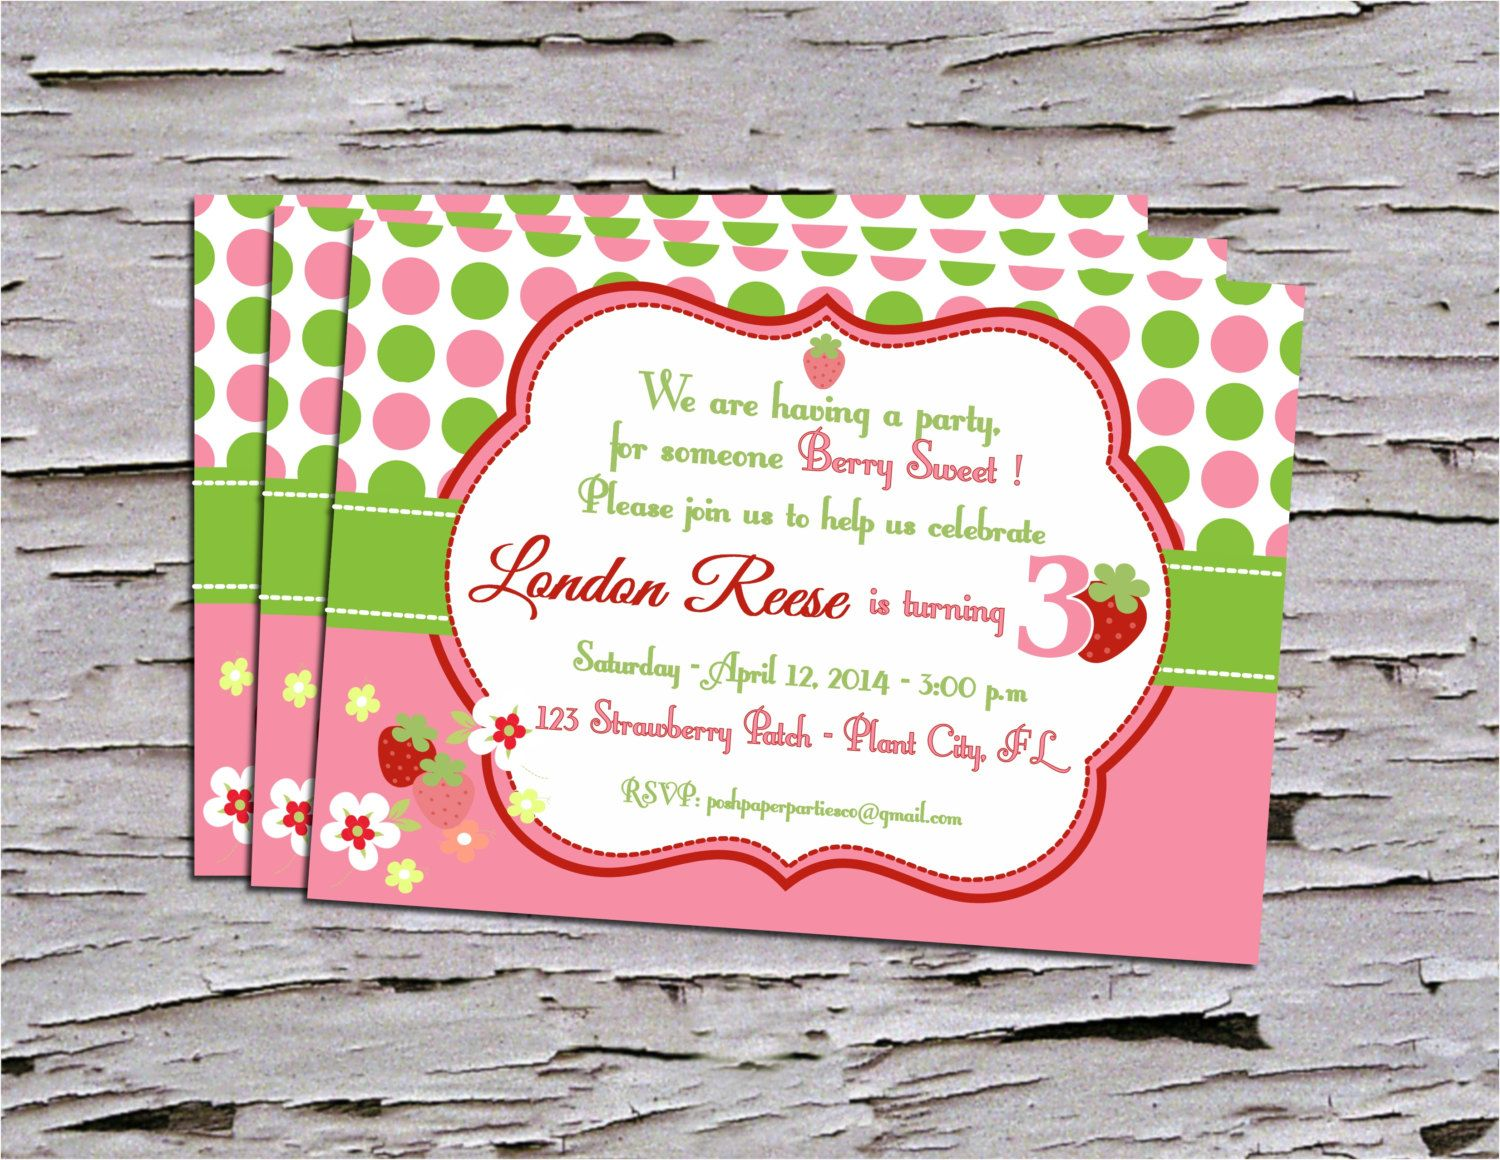 Cyber Monday Sale at Posh Paper Parties! | Invitations | Pinterest ...